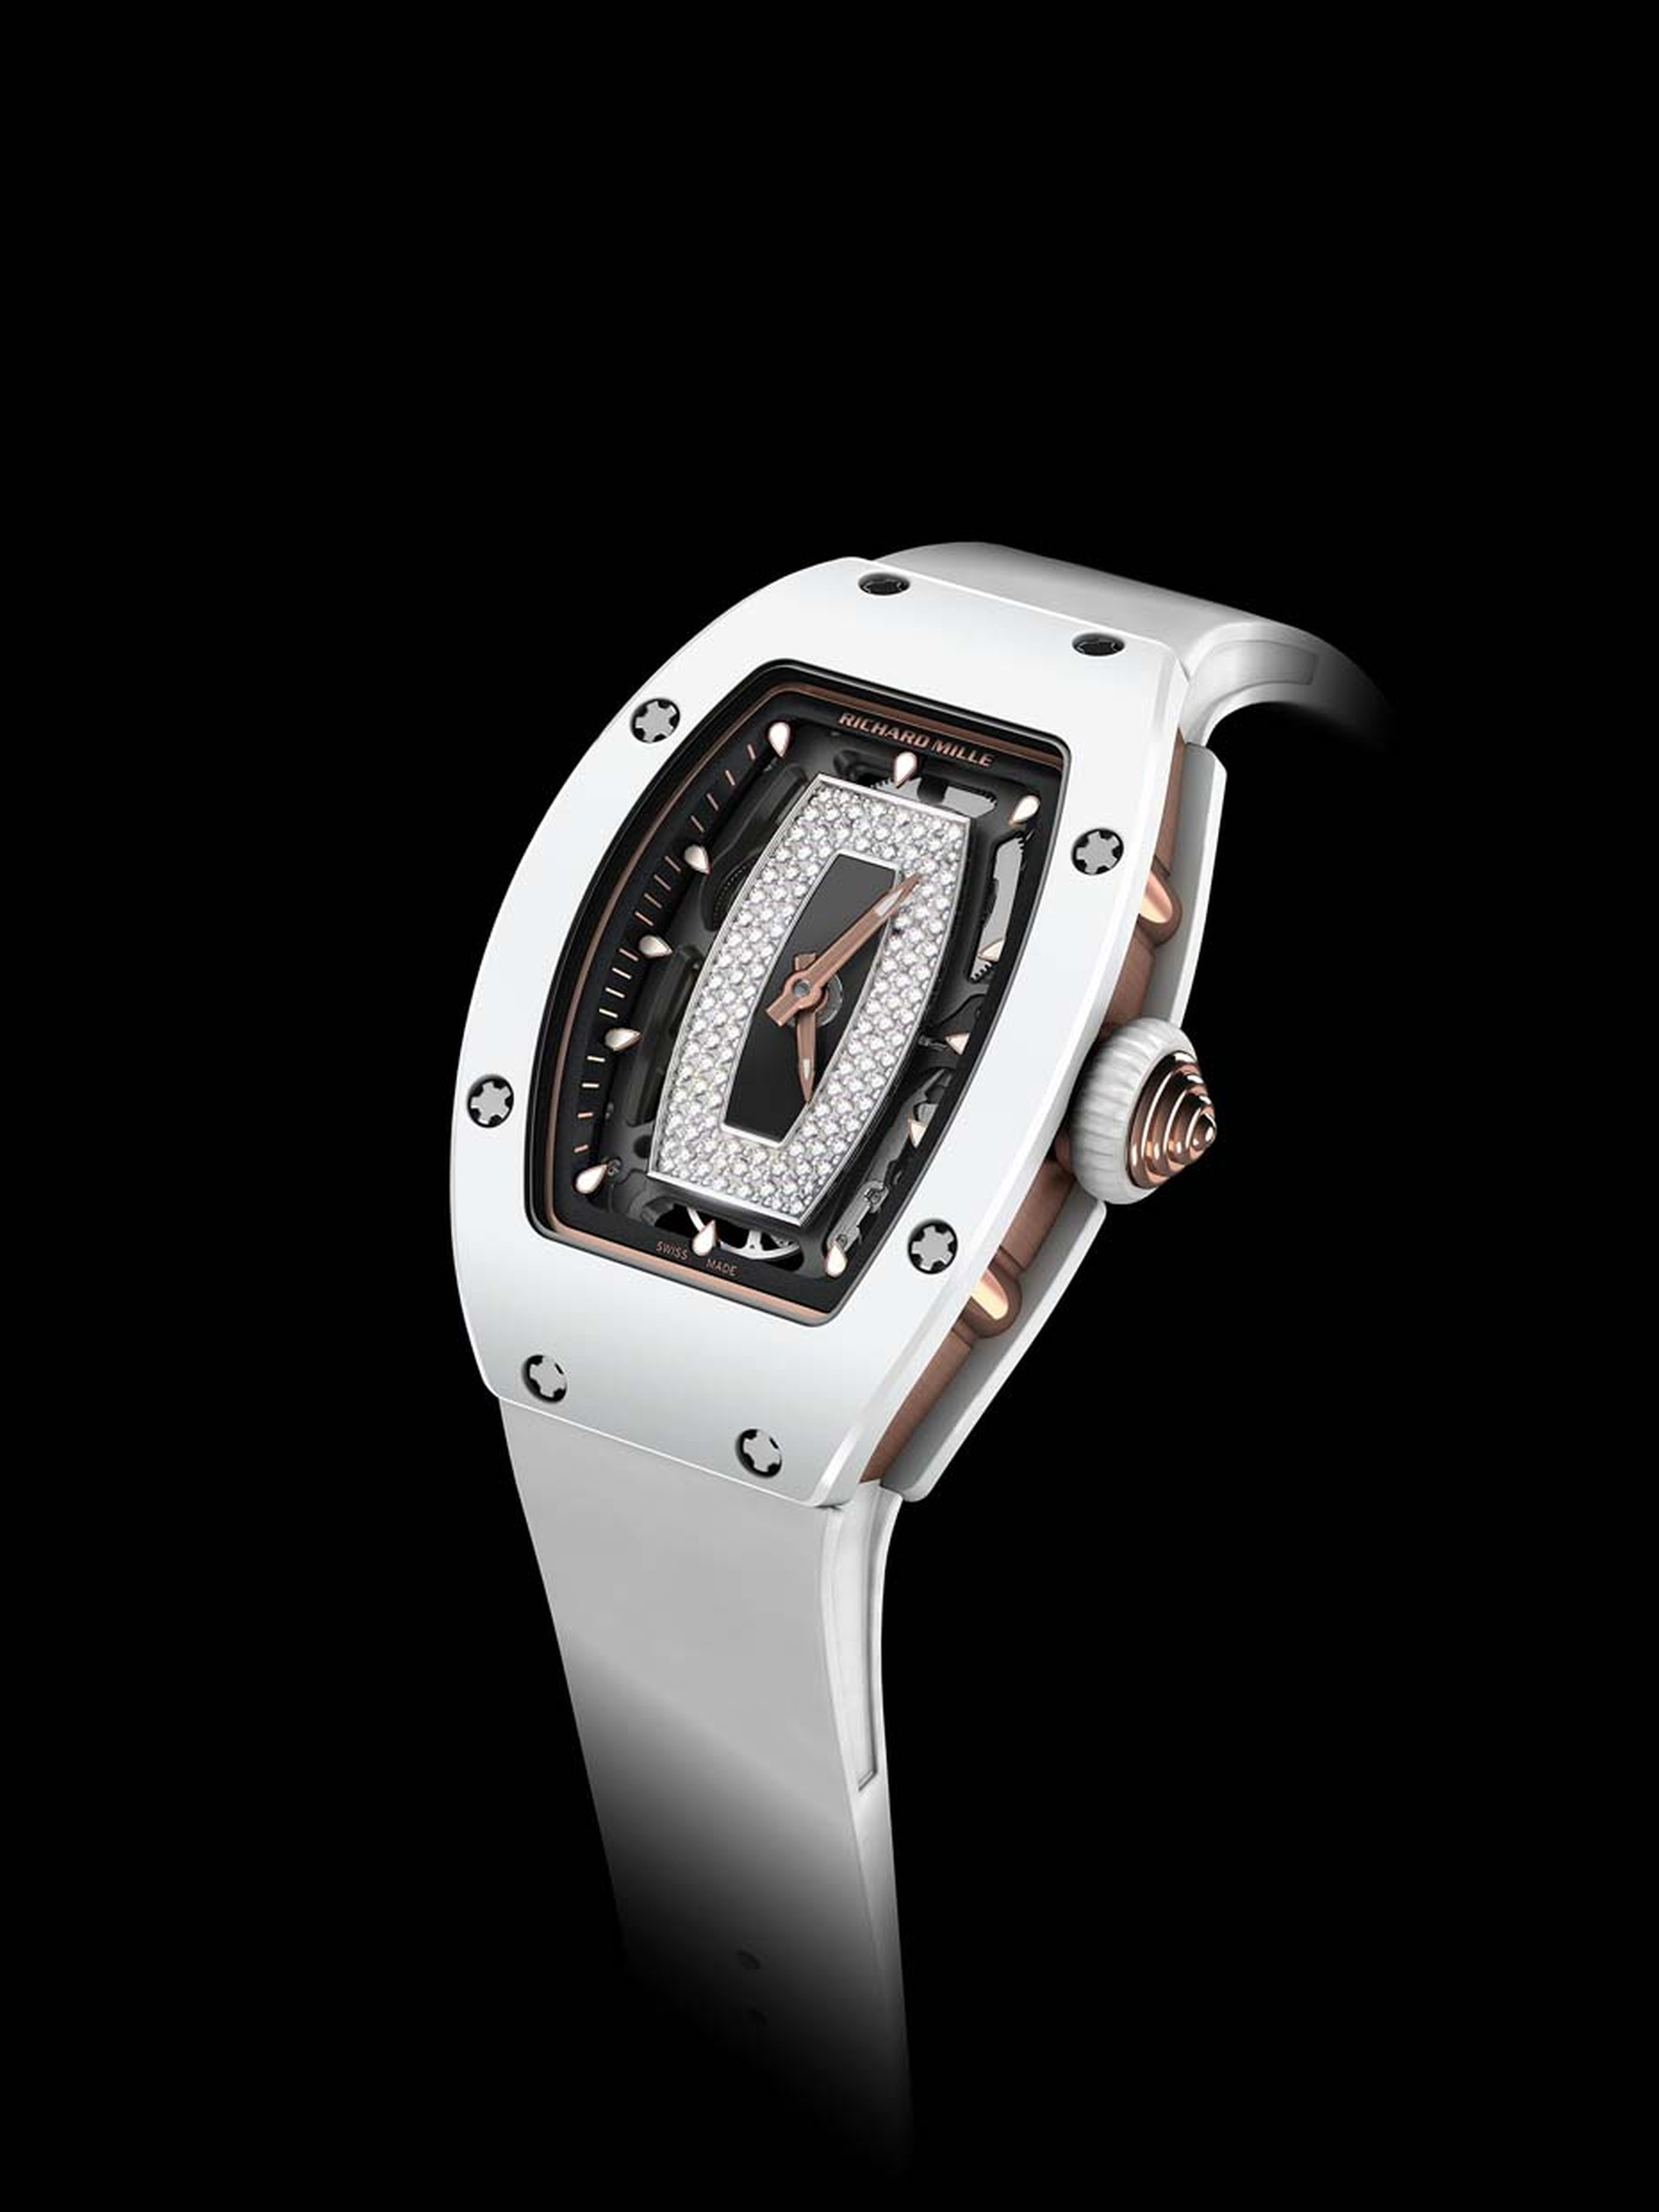 Another first for the Richard Mille ladies' collection, the RM07-01 tripartite case is available in a choice of white ATZ ceramic or warm brown TZP ceramic - both with a red gold case band, providing visual contrast and an extremely high level of scratch